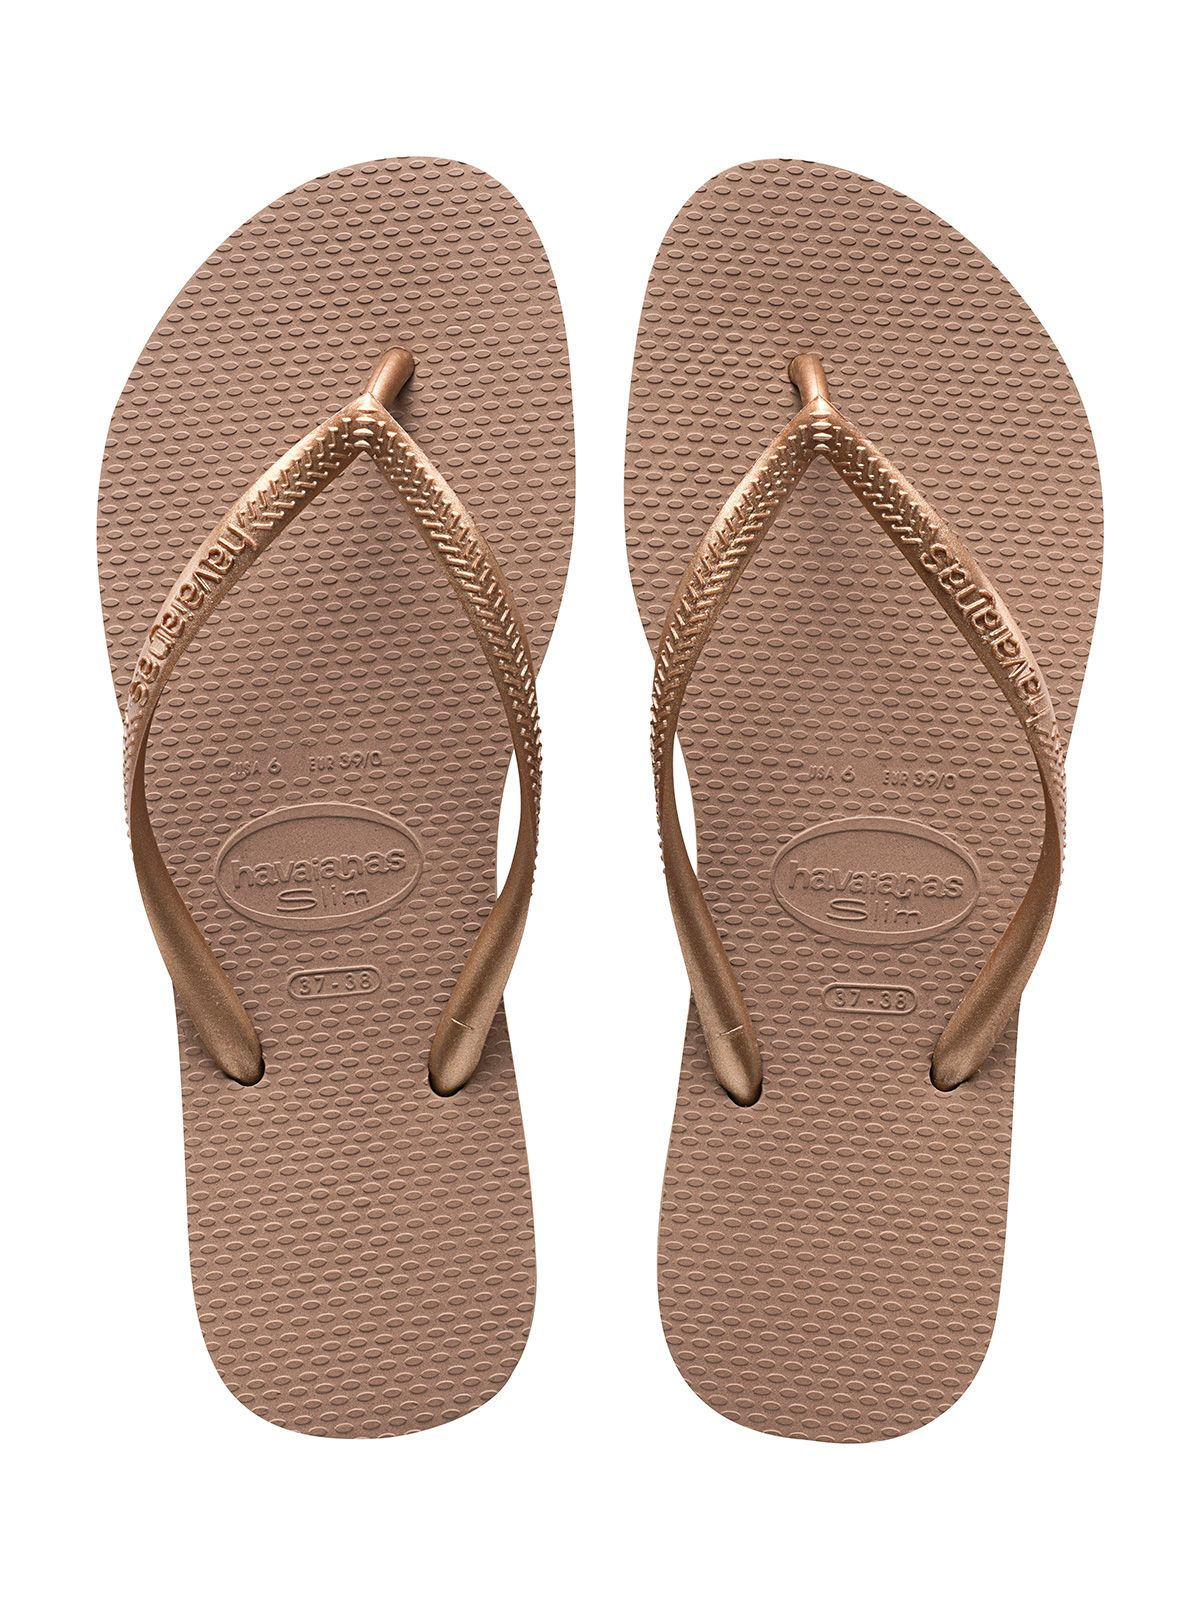 72c5881d5 Nude colour Havaianas flip flops with rose gold strap - Slim Rose Gold